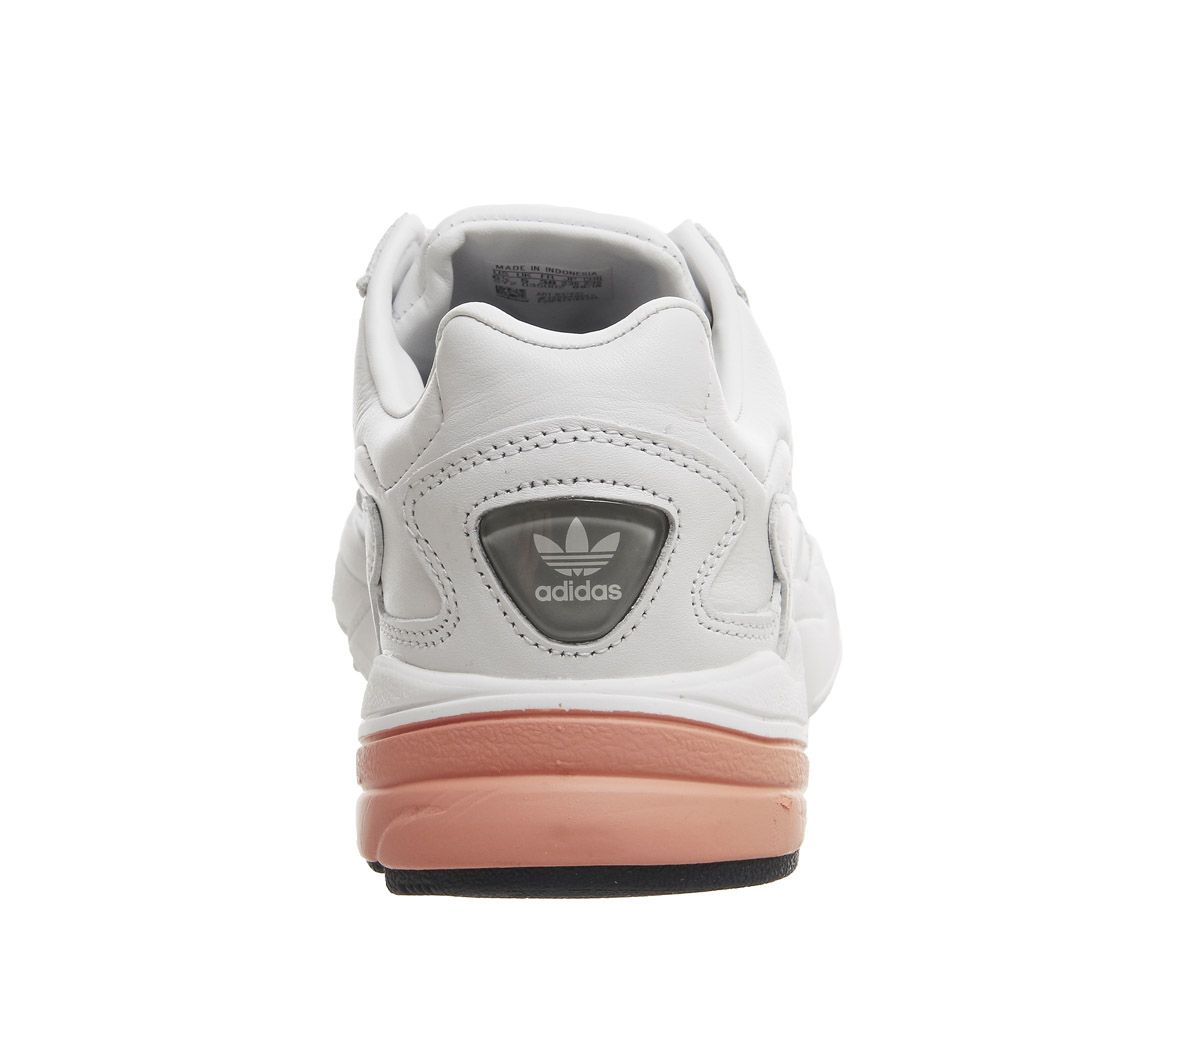 9759f7987 adidas Falcon Trainers Crystal White Easy Orange - Hers trainers